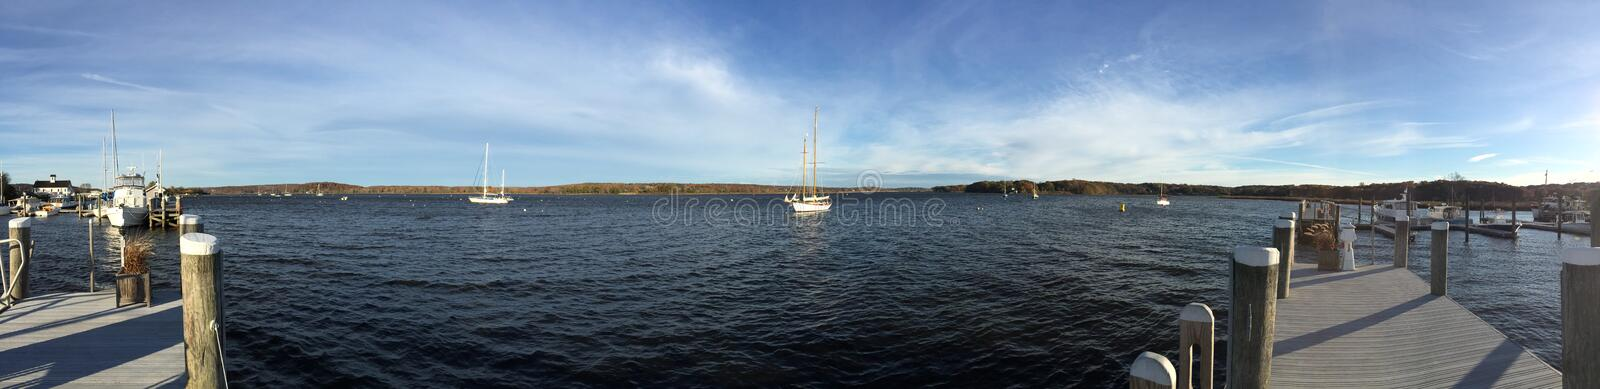 Sailboats in Connecticut harbor royalty free stock images